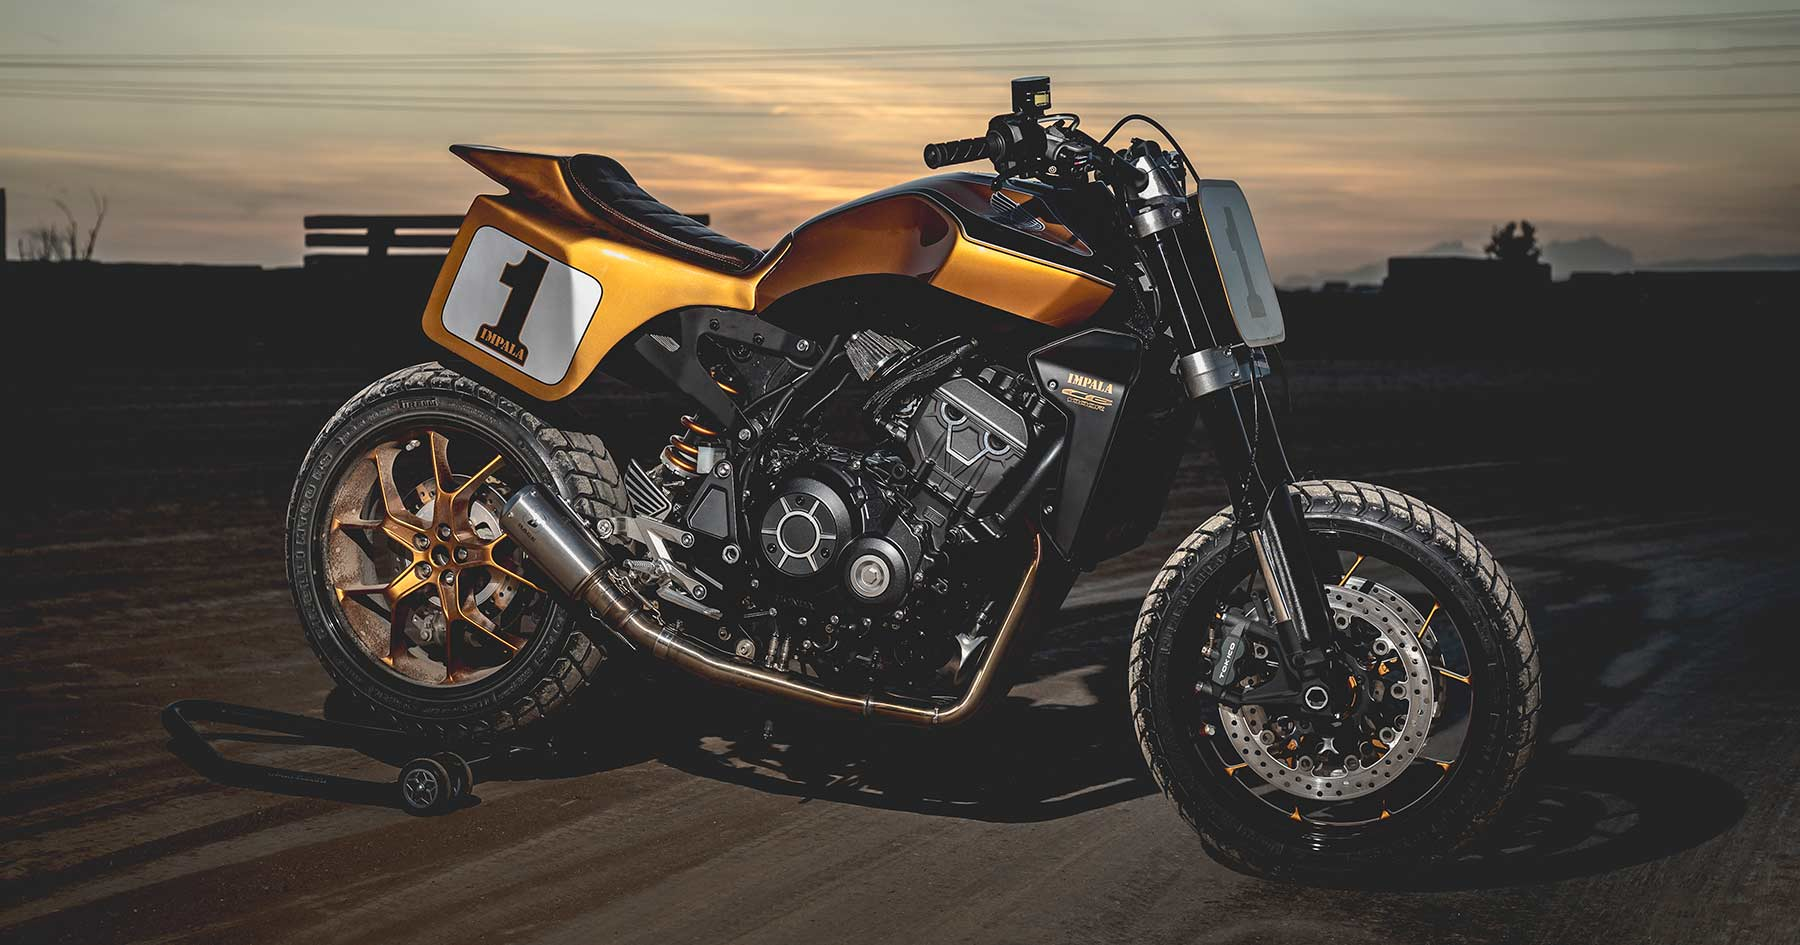 Spanish Flyer: A Honda CB1000R tweaked for the track